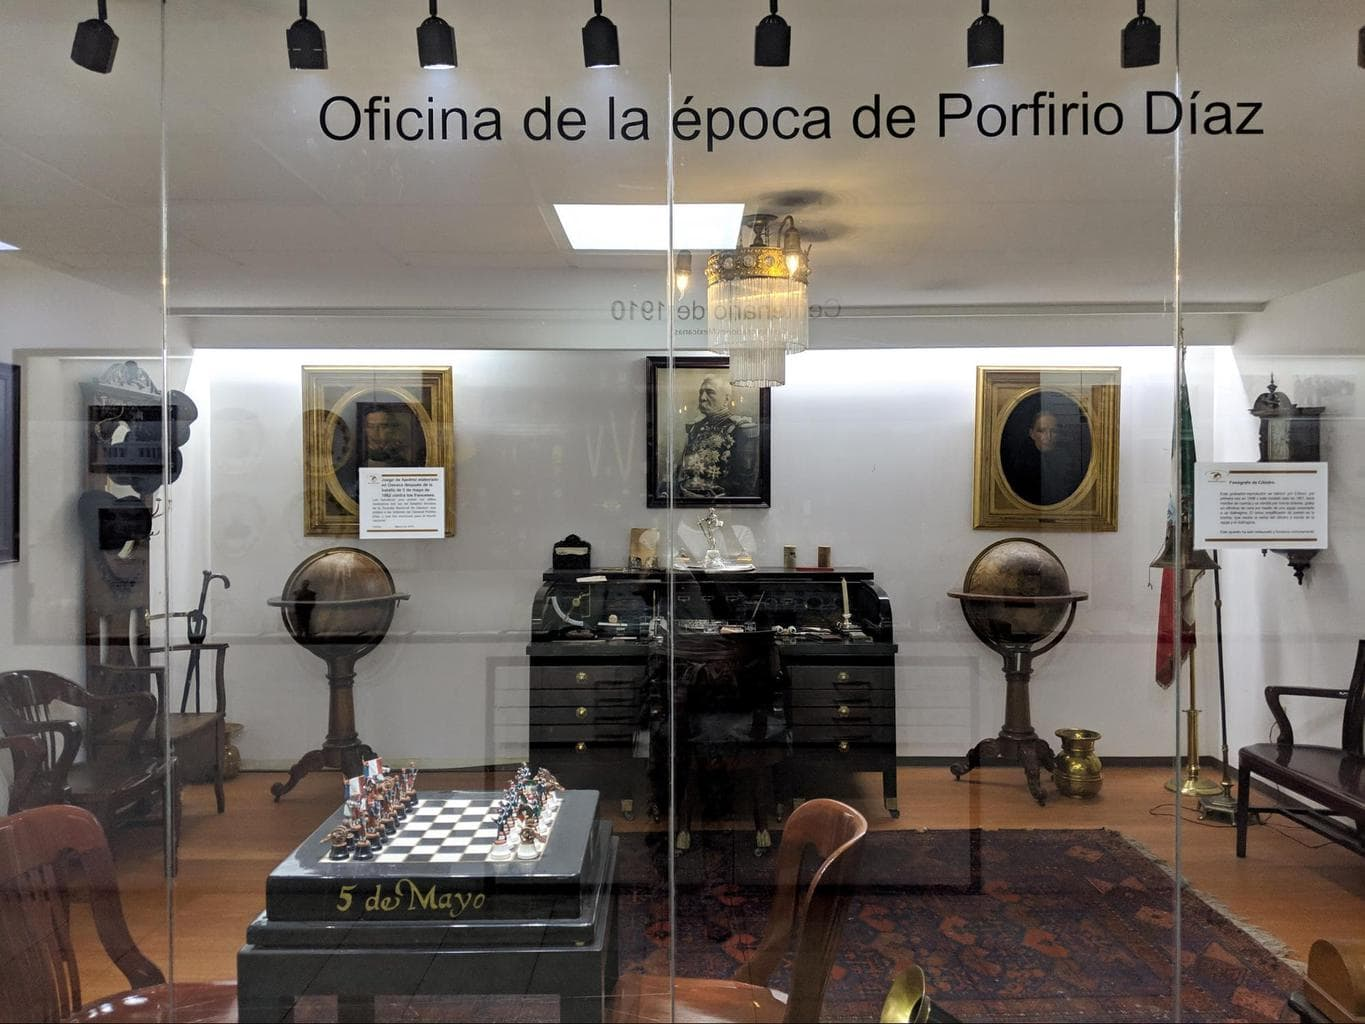 Office from the time of Porfirio Diaz in Torre Latinoamericana